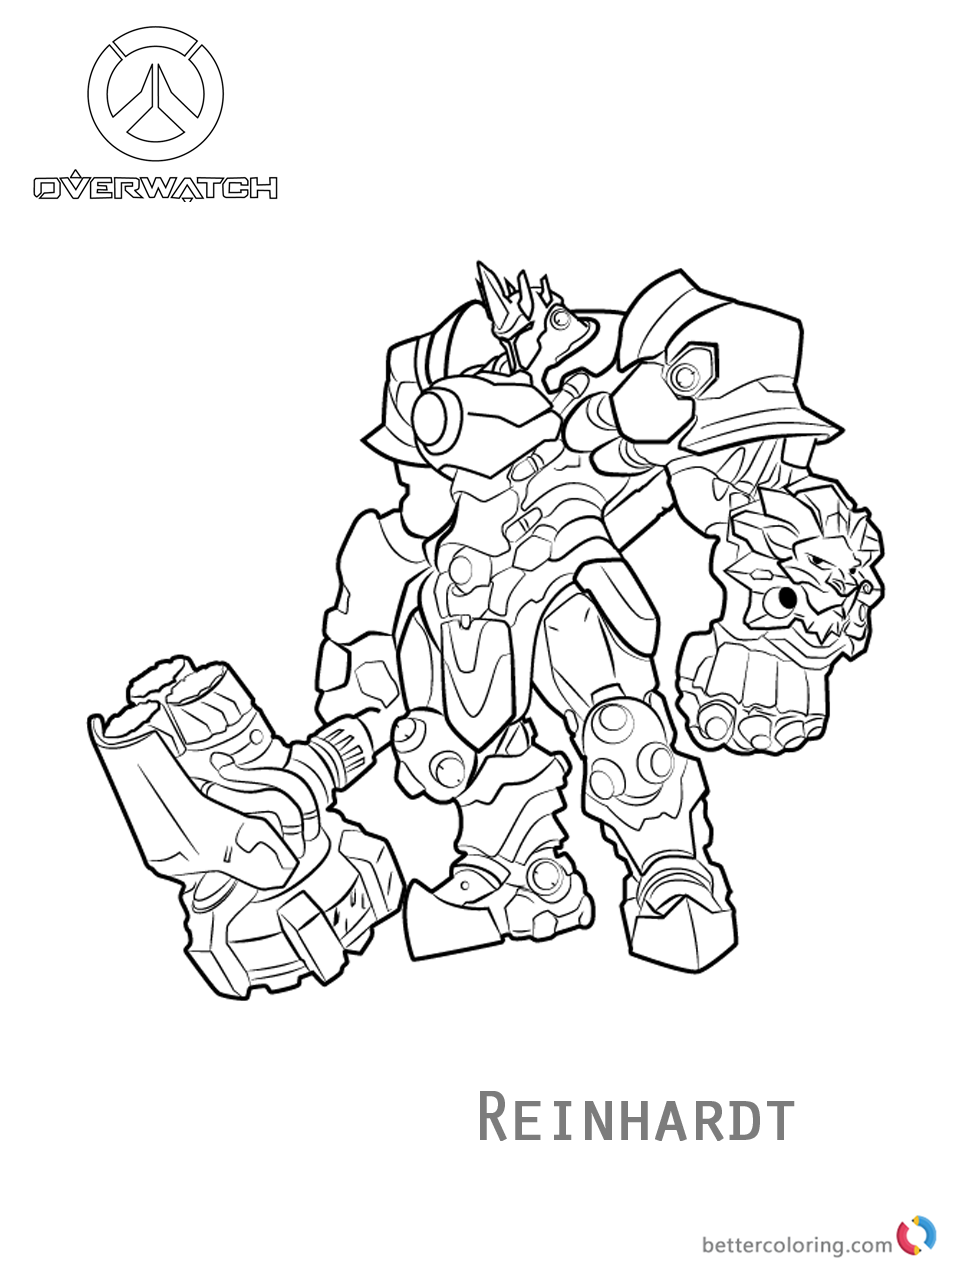 Reinhardt from Overwatch Coloring